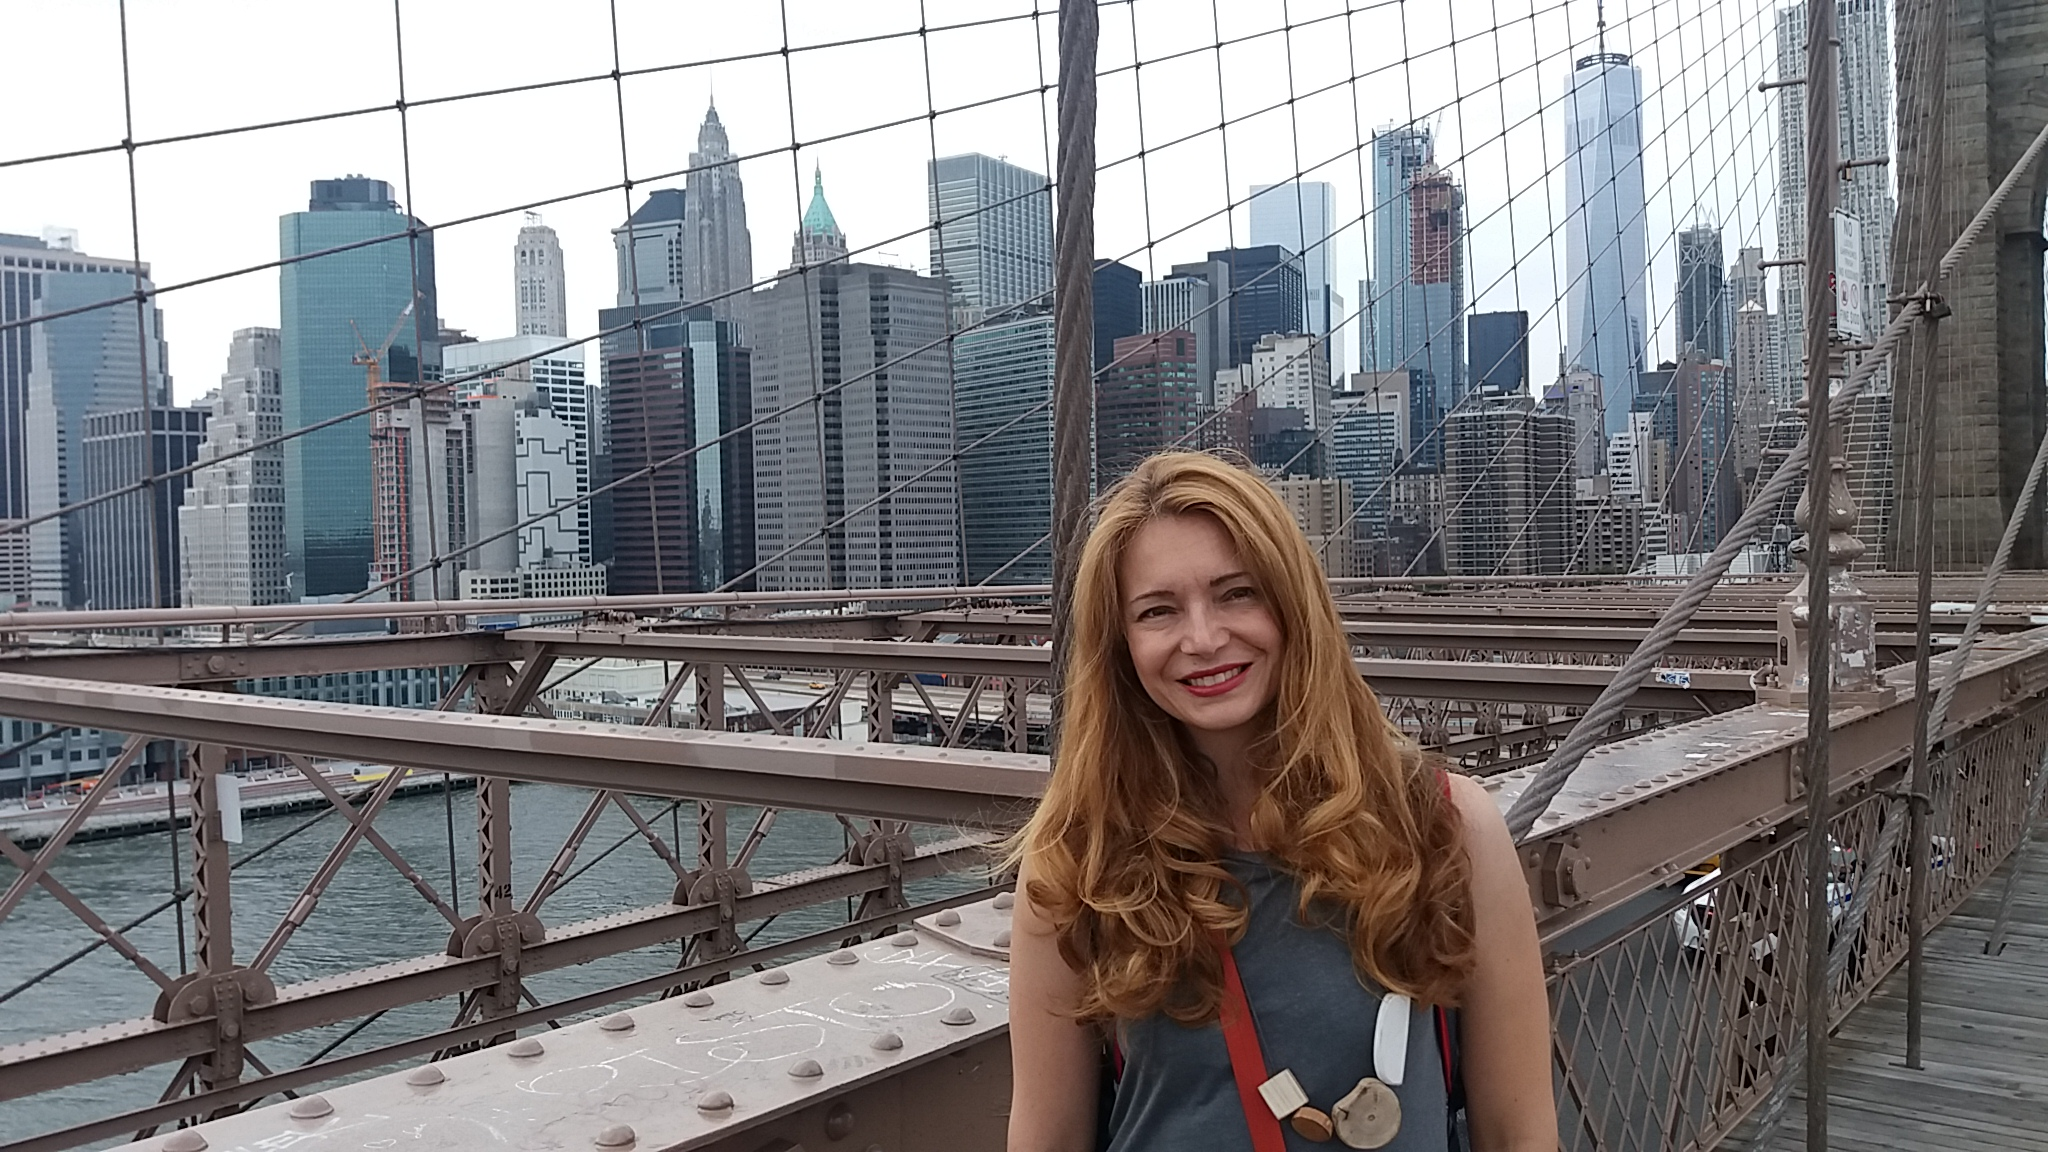 loveNYC_and_Brooklyn_bridge